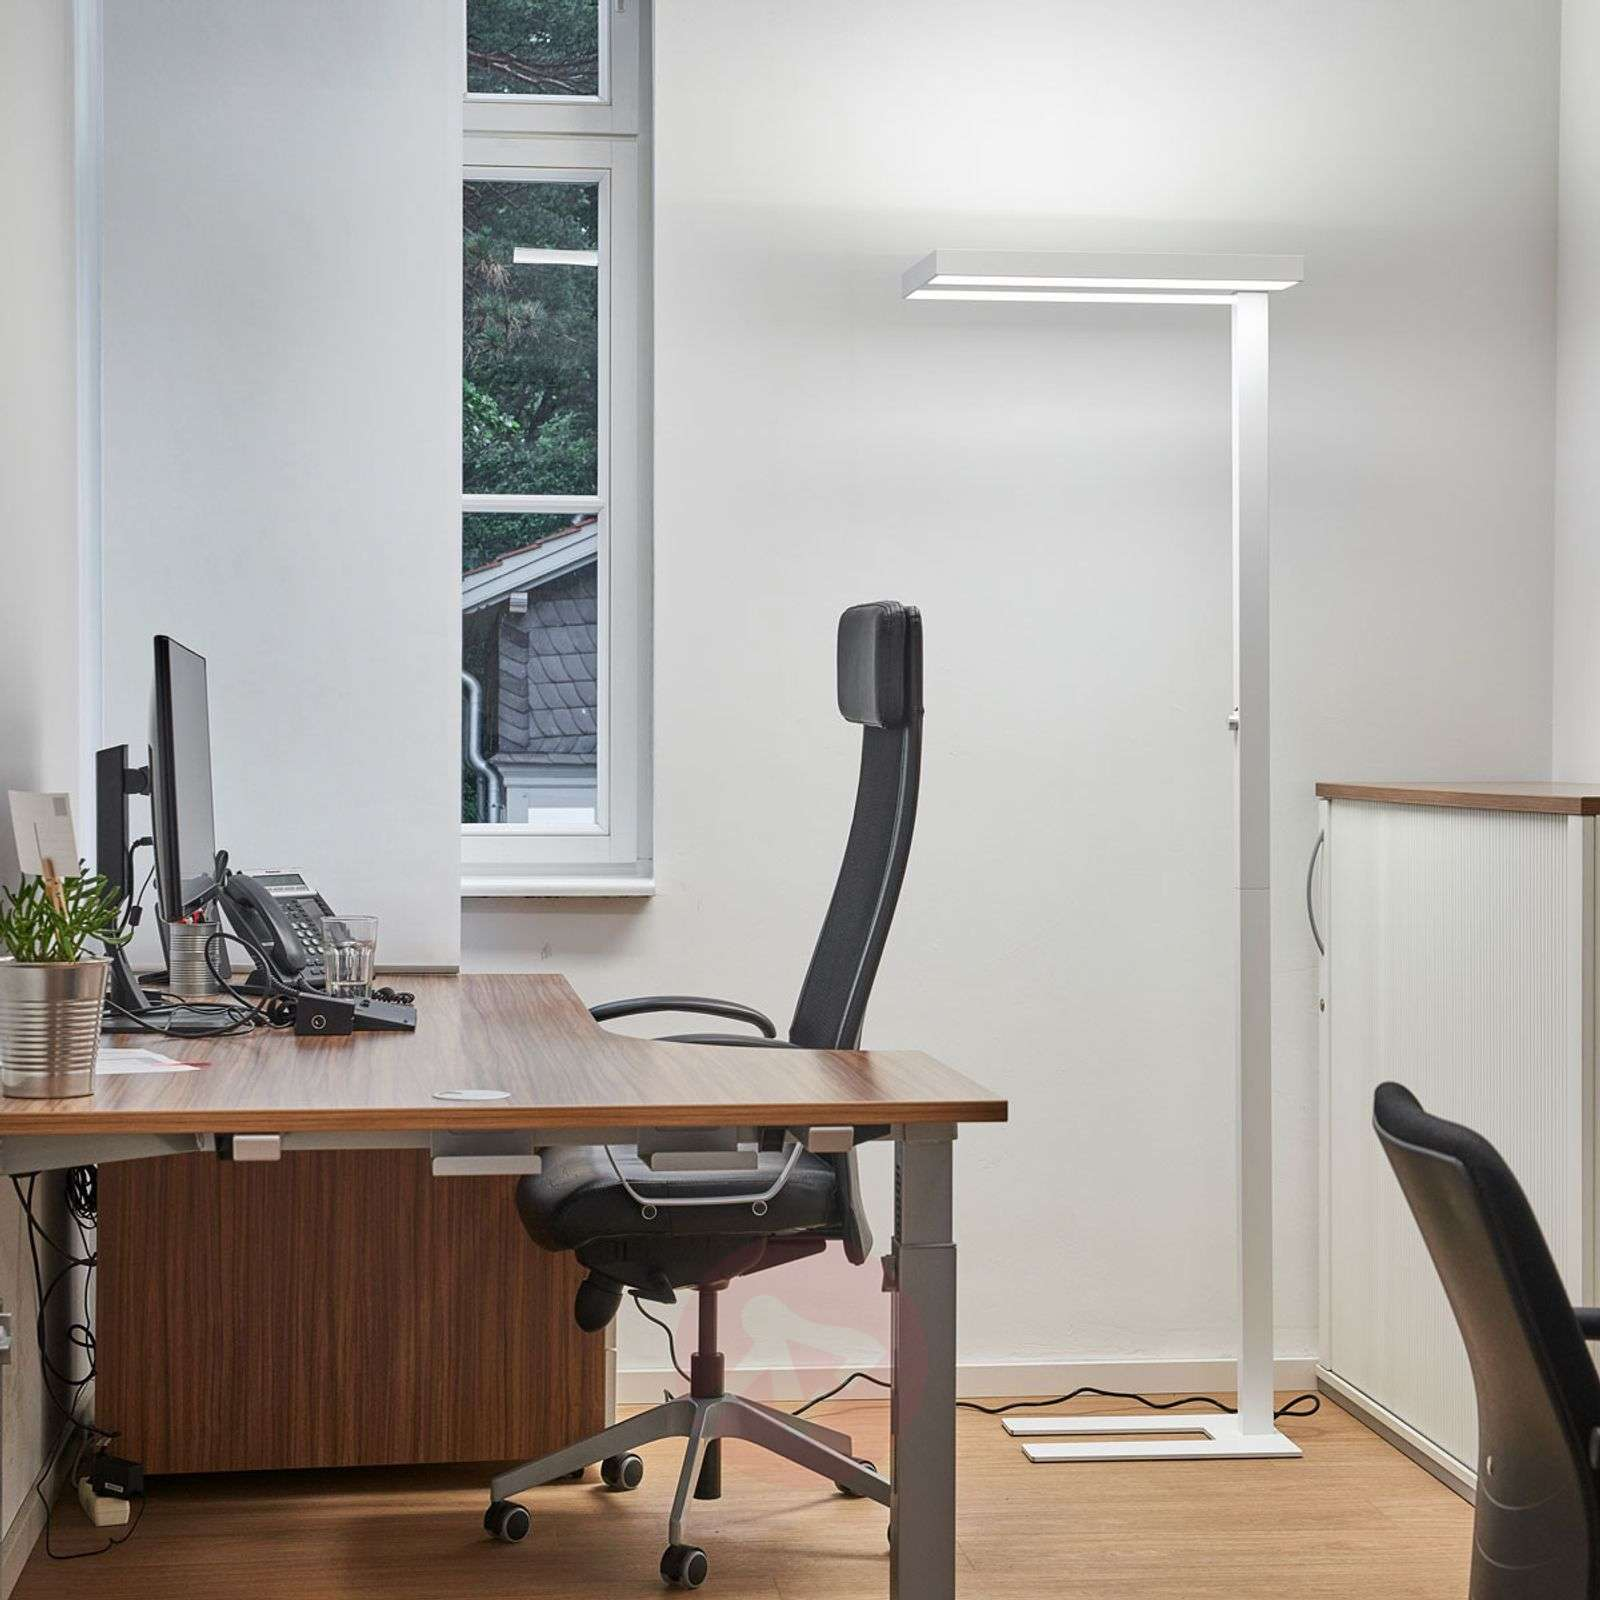 office table lamp. Logan LED Office Floor Lamp With Dimmer In White-9968004-02 Table O